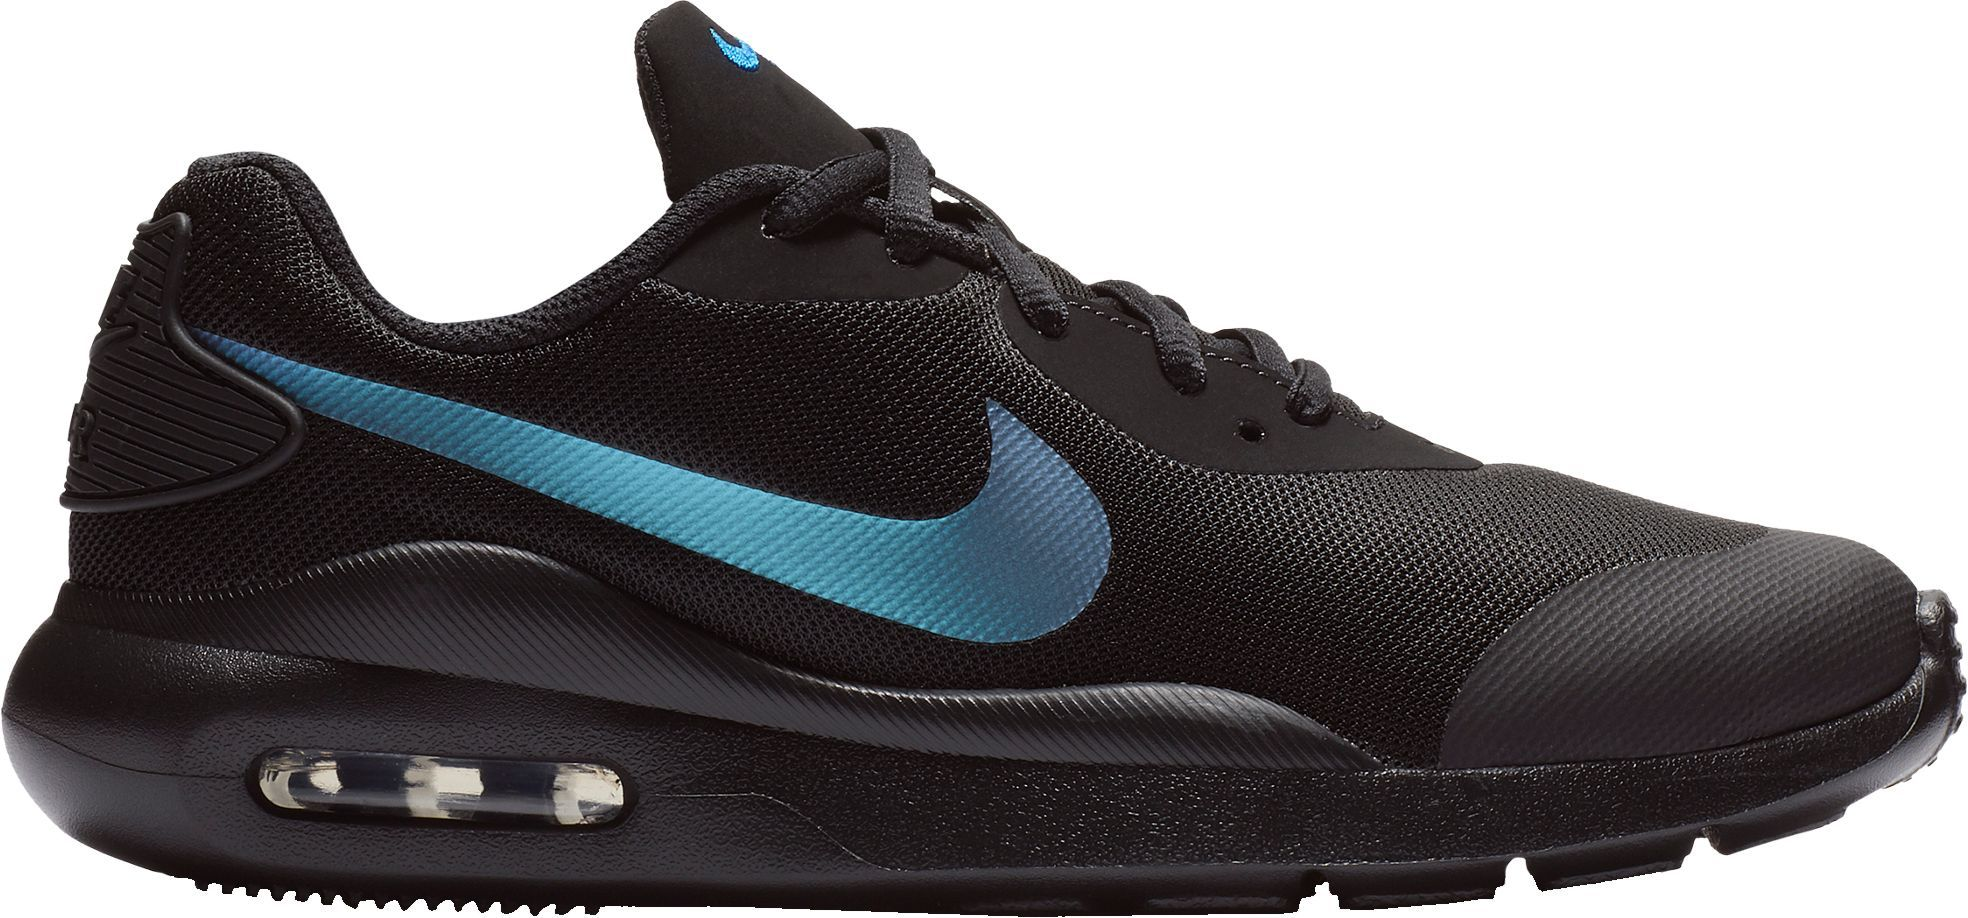 official site outlet store timeless design Nike Kids' Grade School Air Max Oketo Shoes, Boy's, Size: 3.5 ...